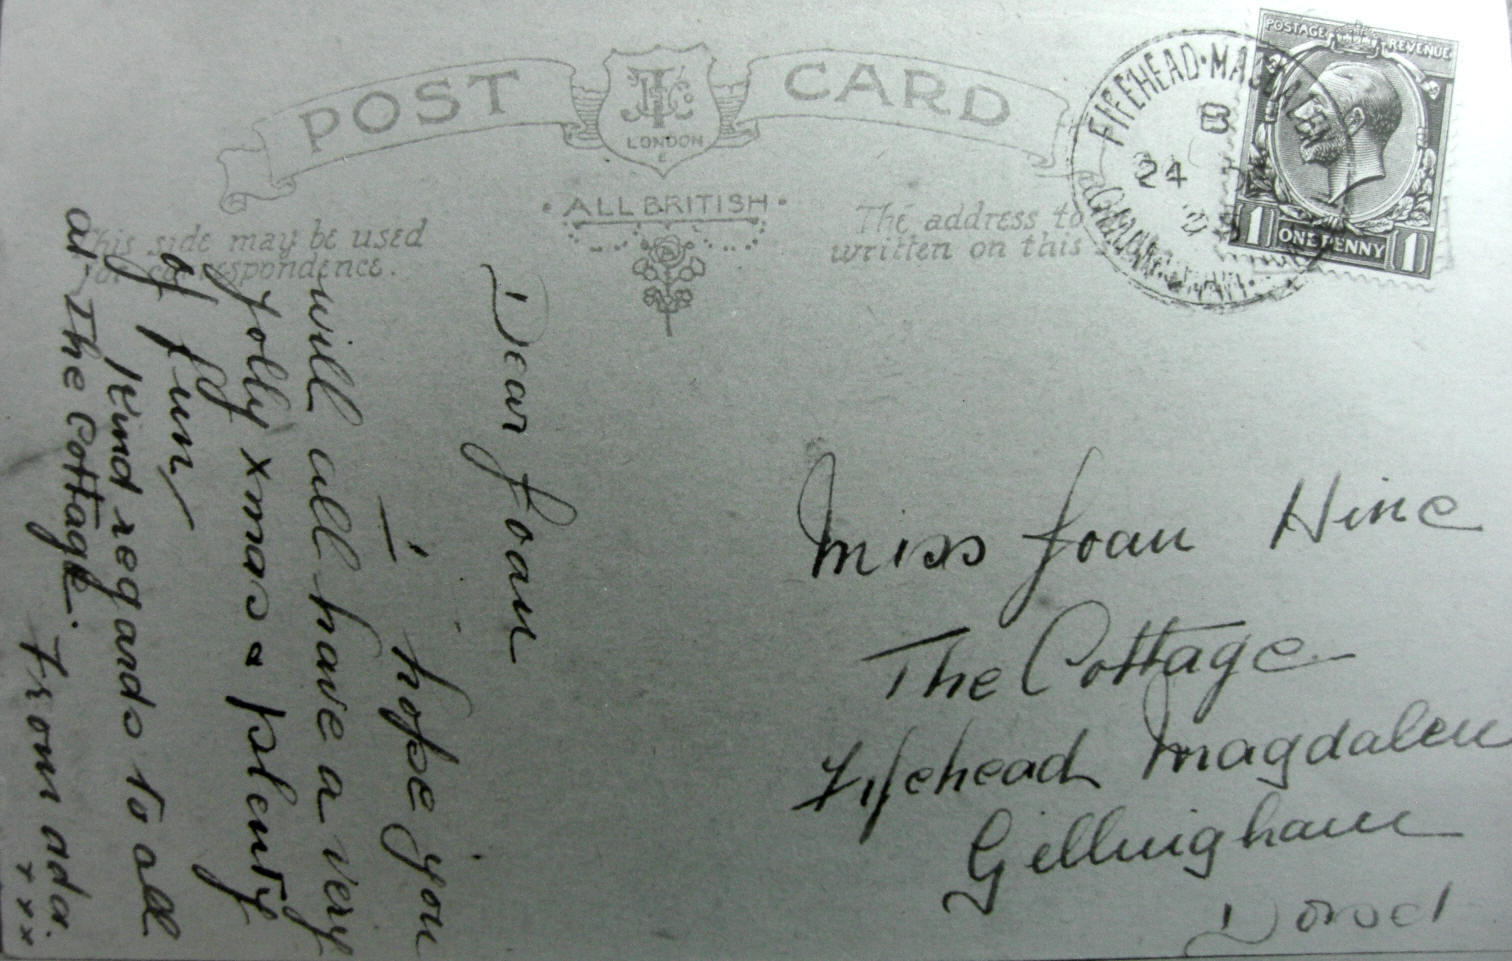 Christmas postcard stmped at Fifead Post Office 24 December